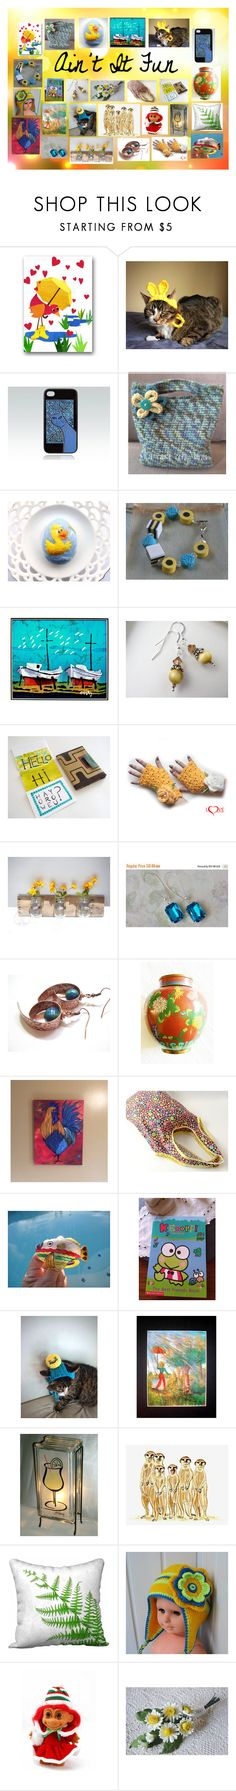 """""""Ain't It Fun: Handmade Etsy Gifts for All"""" by paulinemcewen ❤ liked on Polyvore featuring Miele and rustic"""